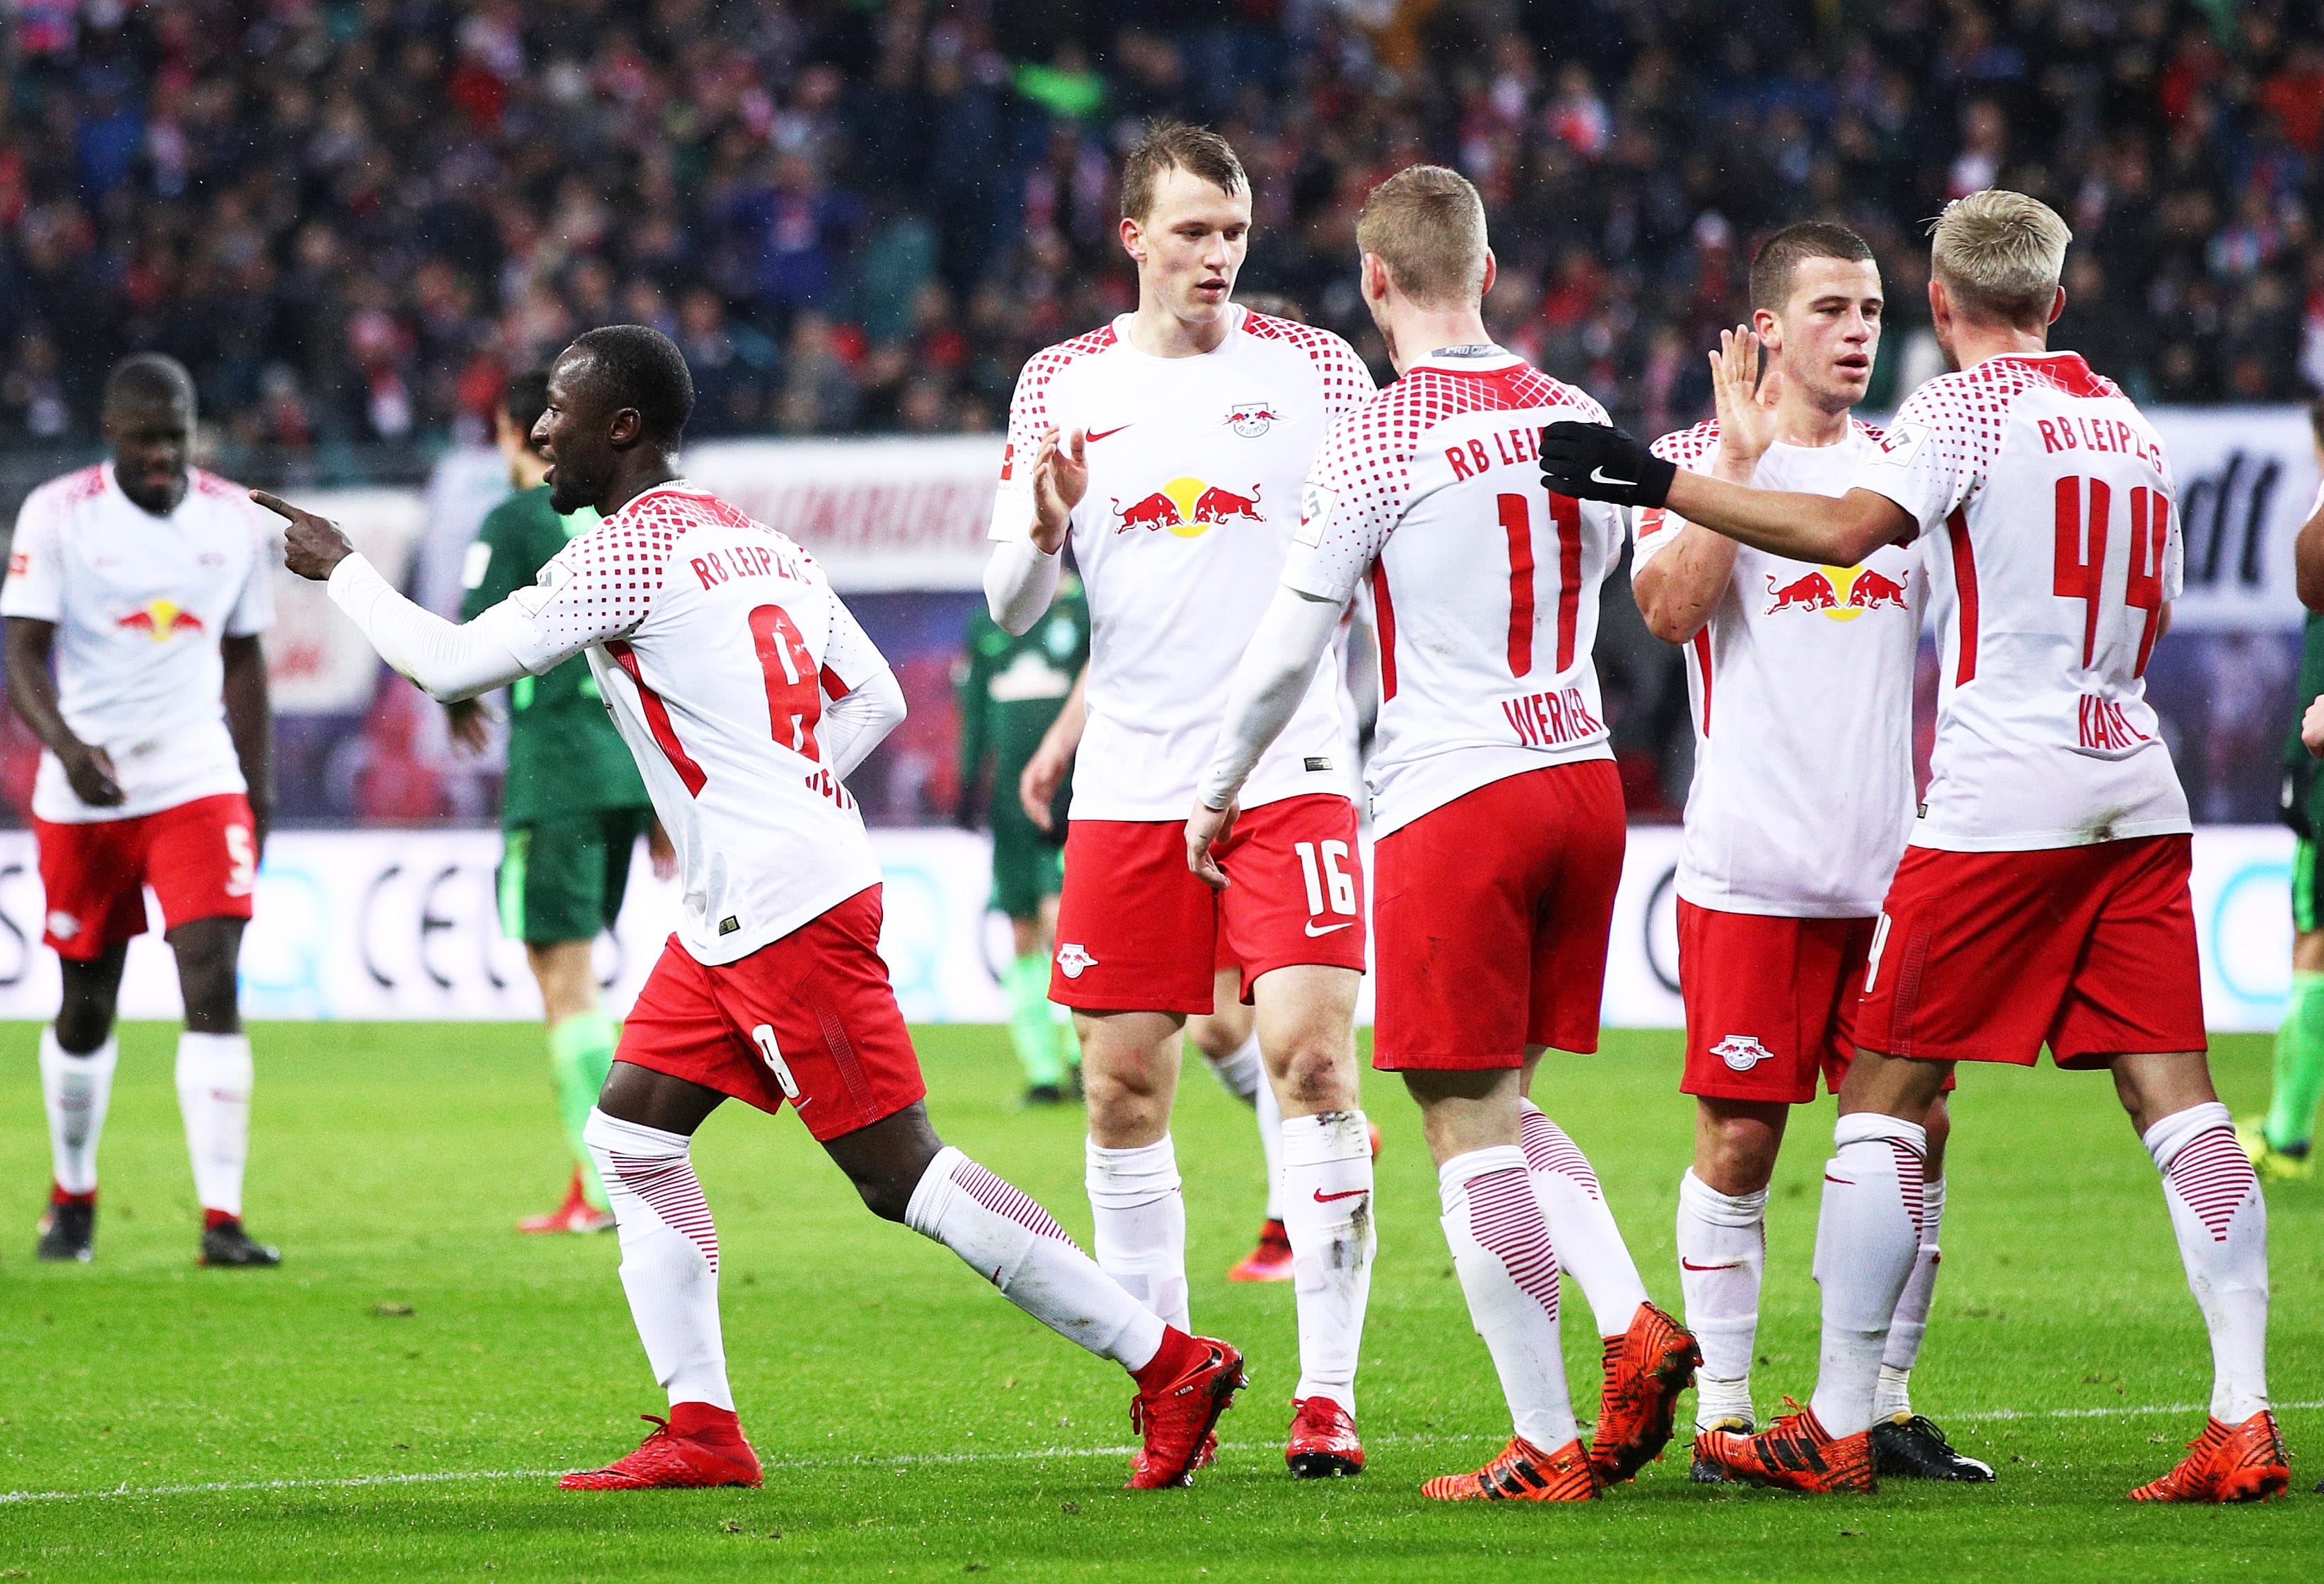 Leipzig vs Werder Bremen Football Prediction